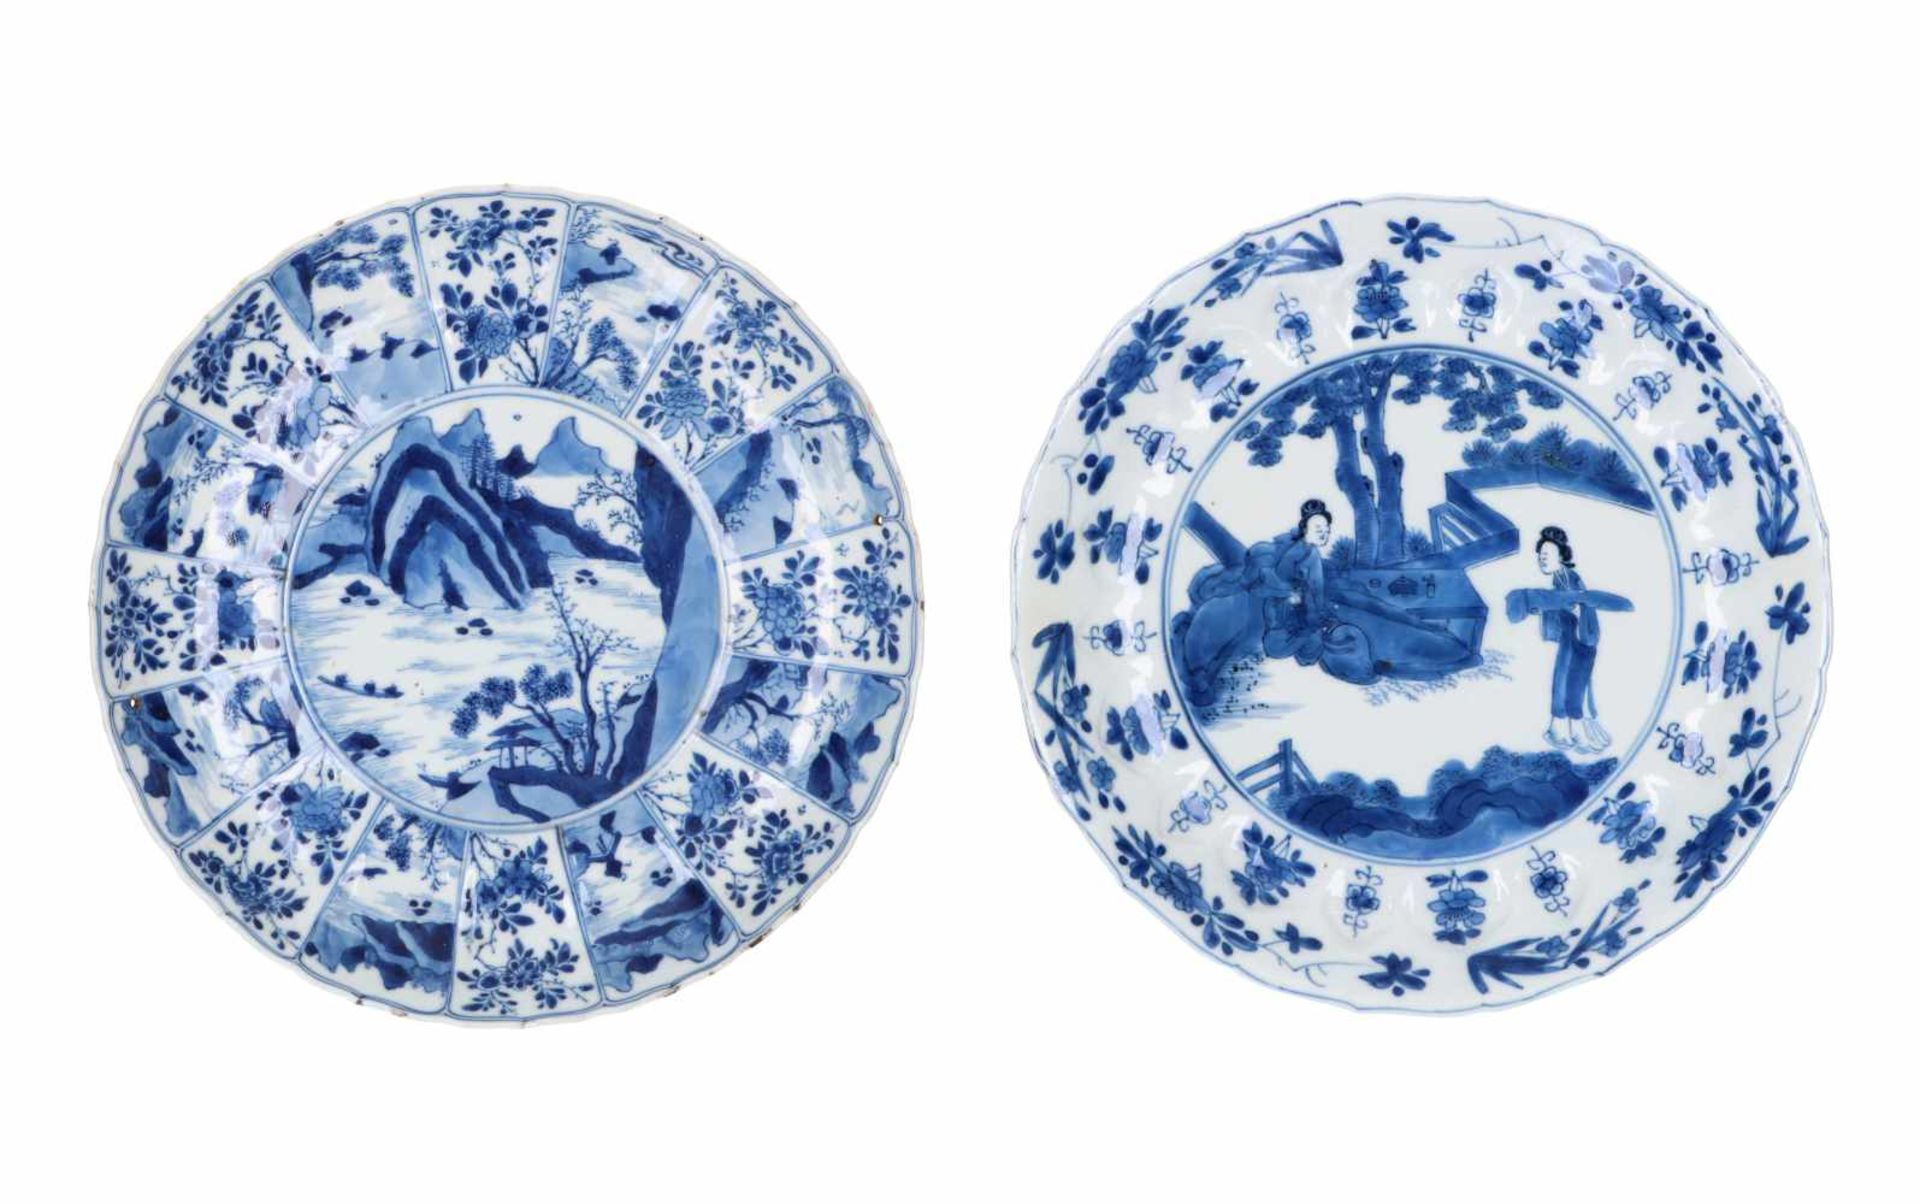 A blue and white porcelain dish with scalloped rim, decorated with ladies in a garden and flowers.